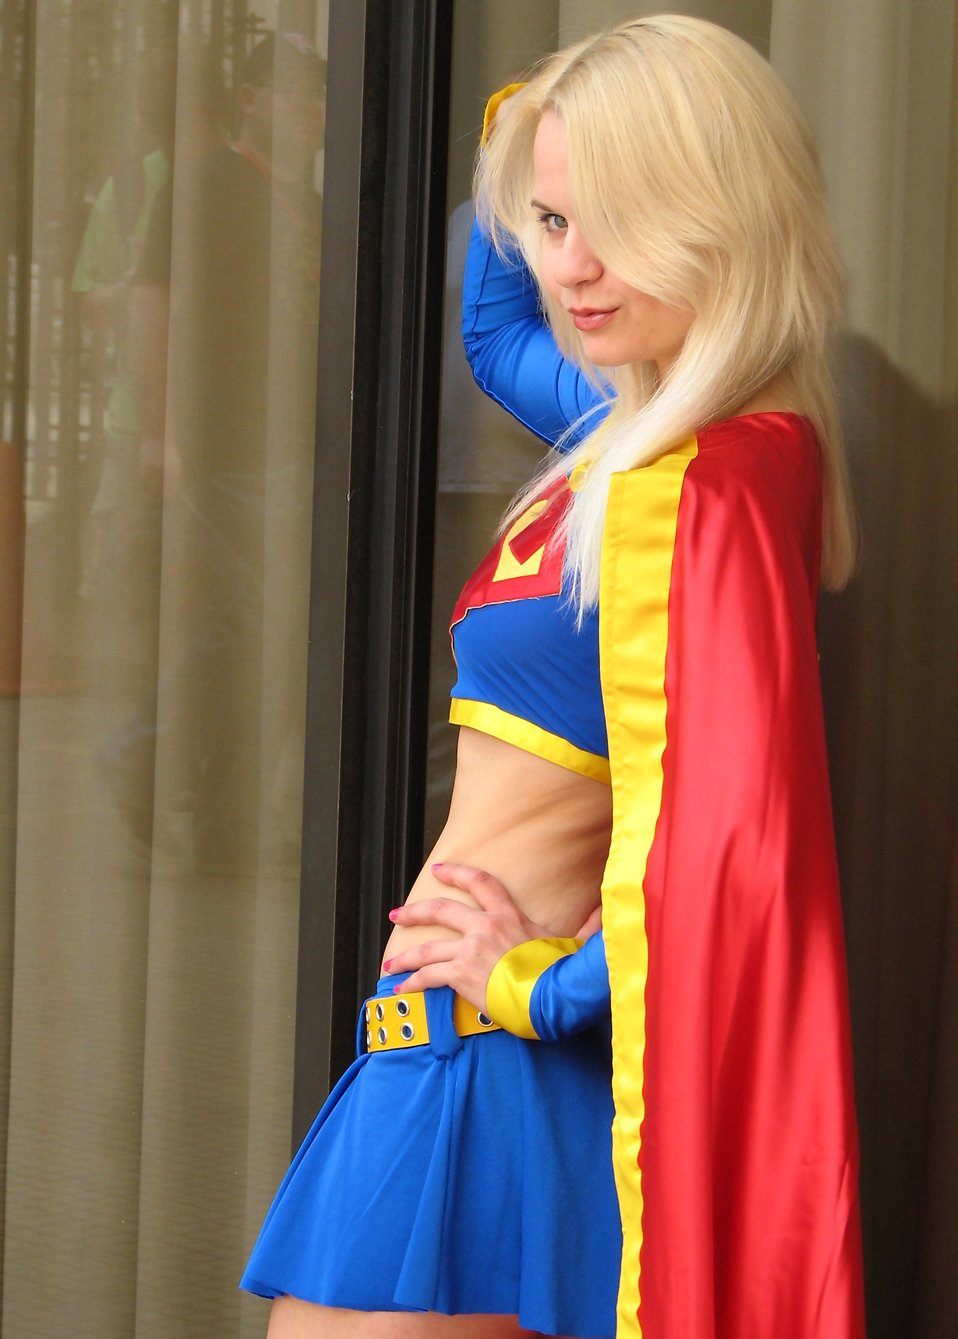 Beautiful woman posing in a Supergirl costume at Dragoncon : Free Stock Photo